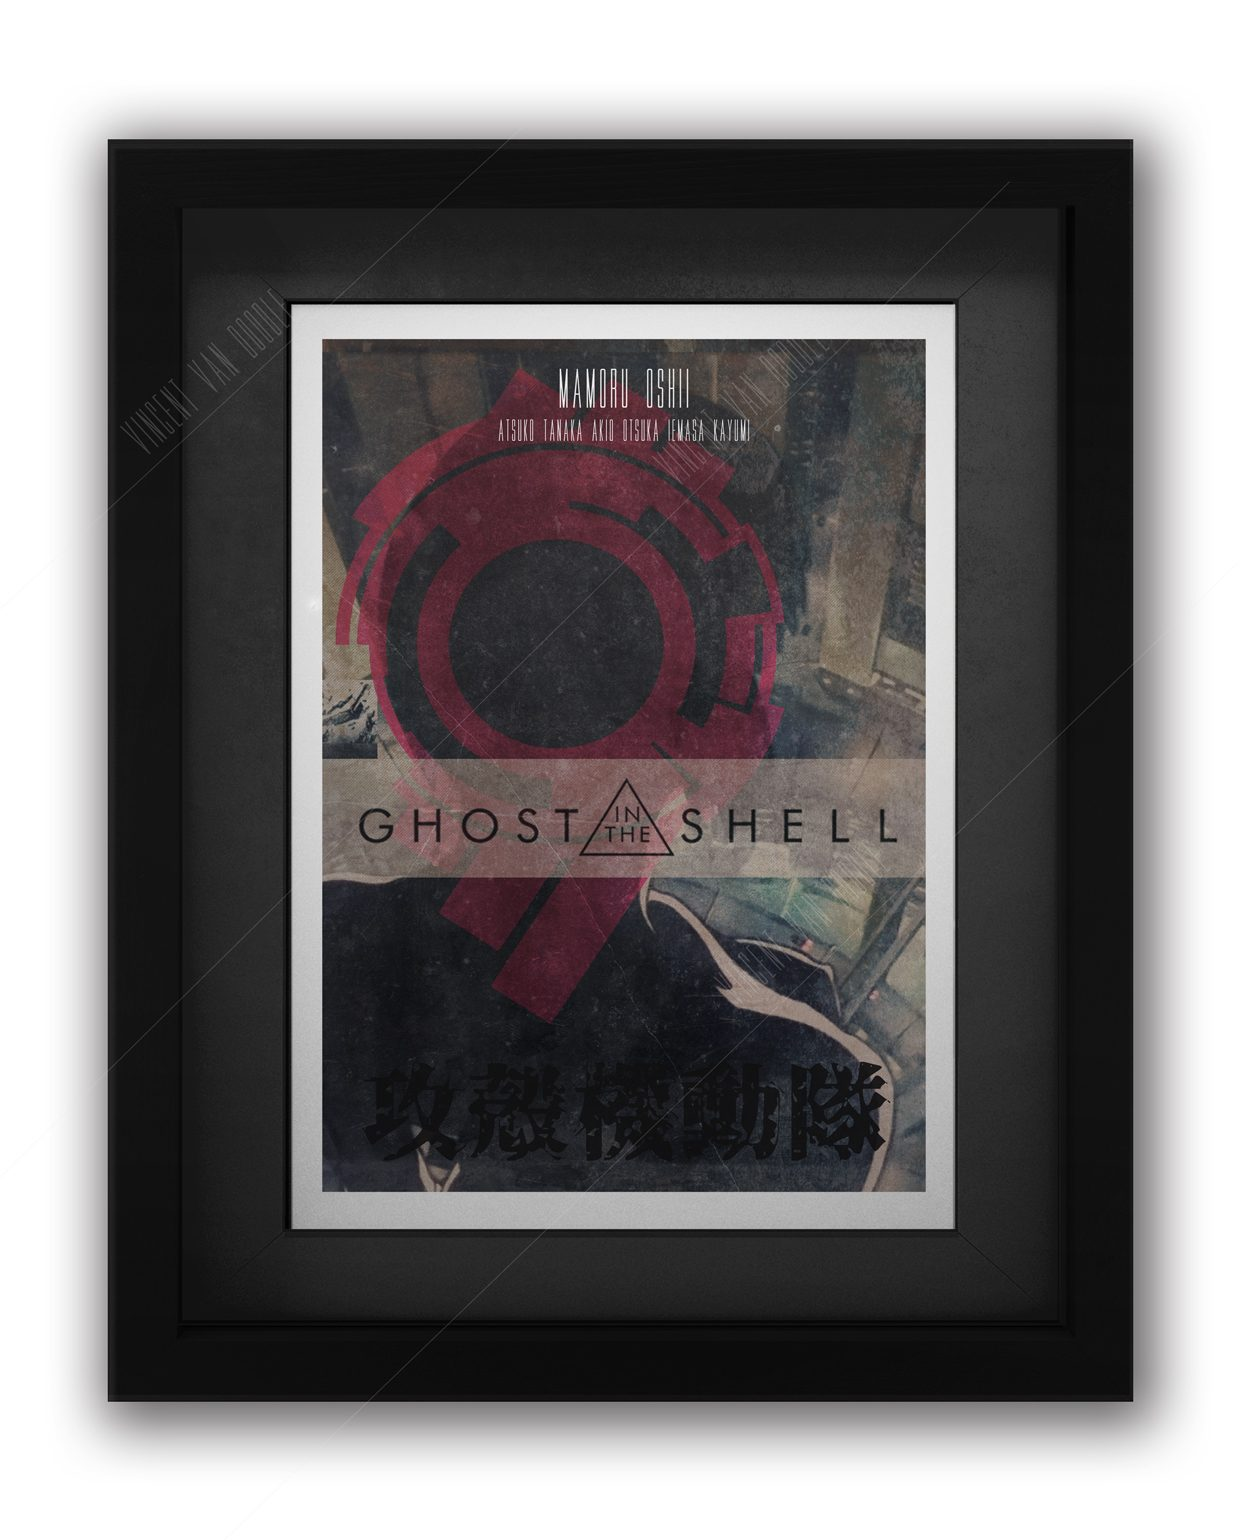 ghost-in-the-shell-framed